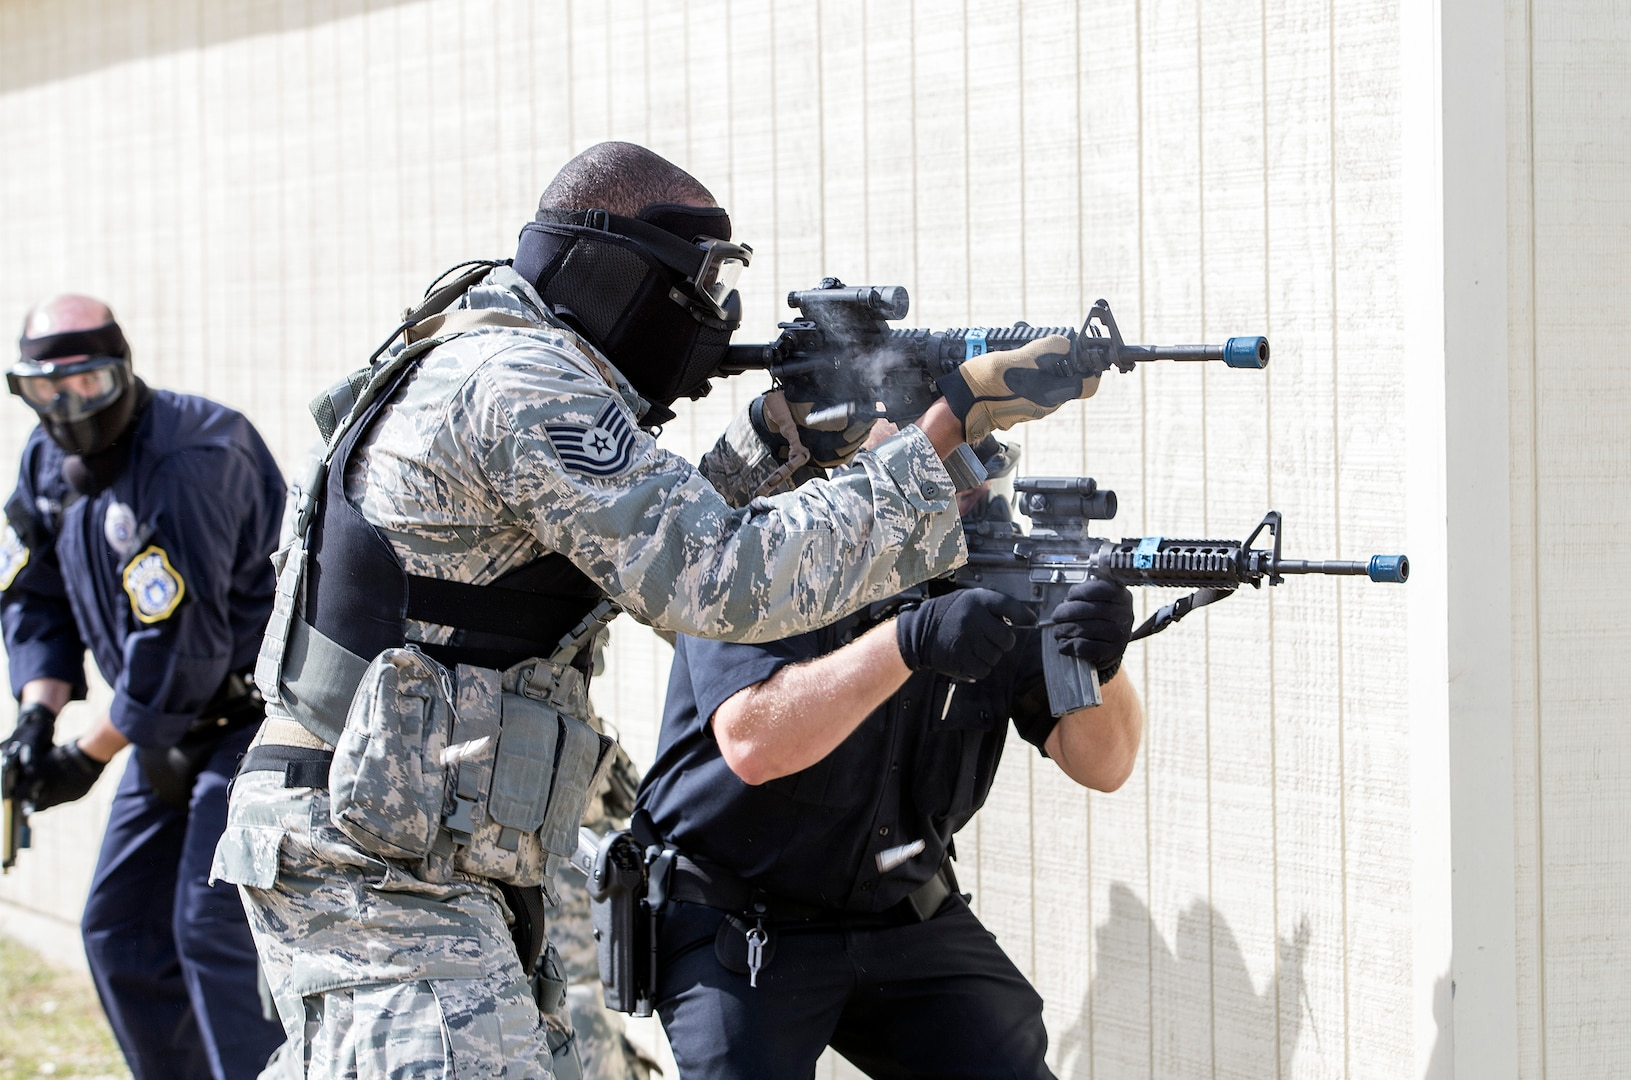 Members of the 902nd Security Forces Squadron fire at hostiles during a barricaded suspect exercise Nov. 10 at Joint Base San Antonio-Randolph's Camp Talon. Security forces members exchanged simulated munitions fire with hostiles throughout the exercise, bringing more realism while practicing assault force maneuvers during the exercise scenario. (U.S. Air Force photo by Johnny Saldivar)